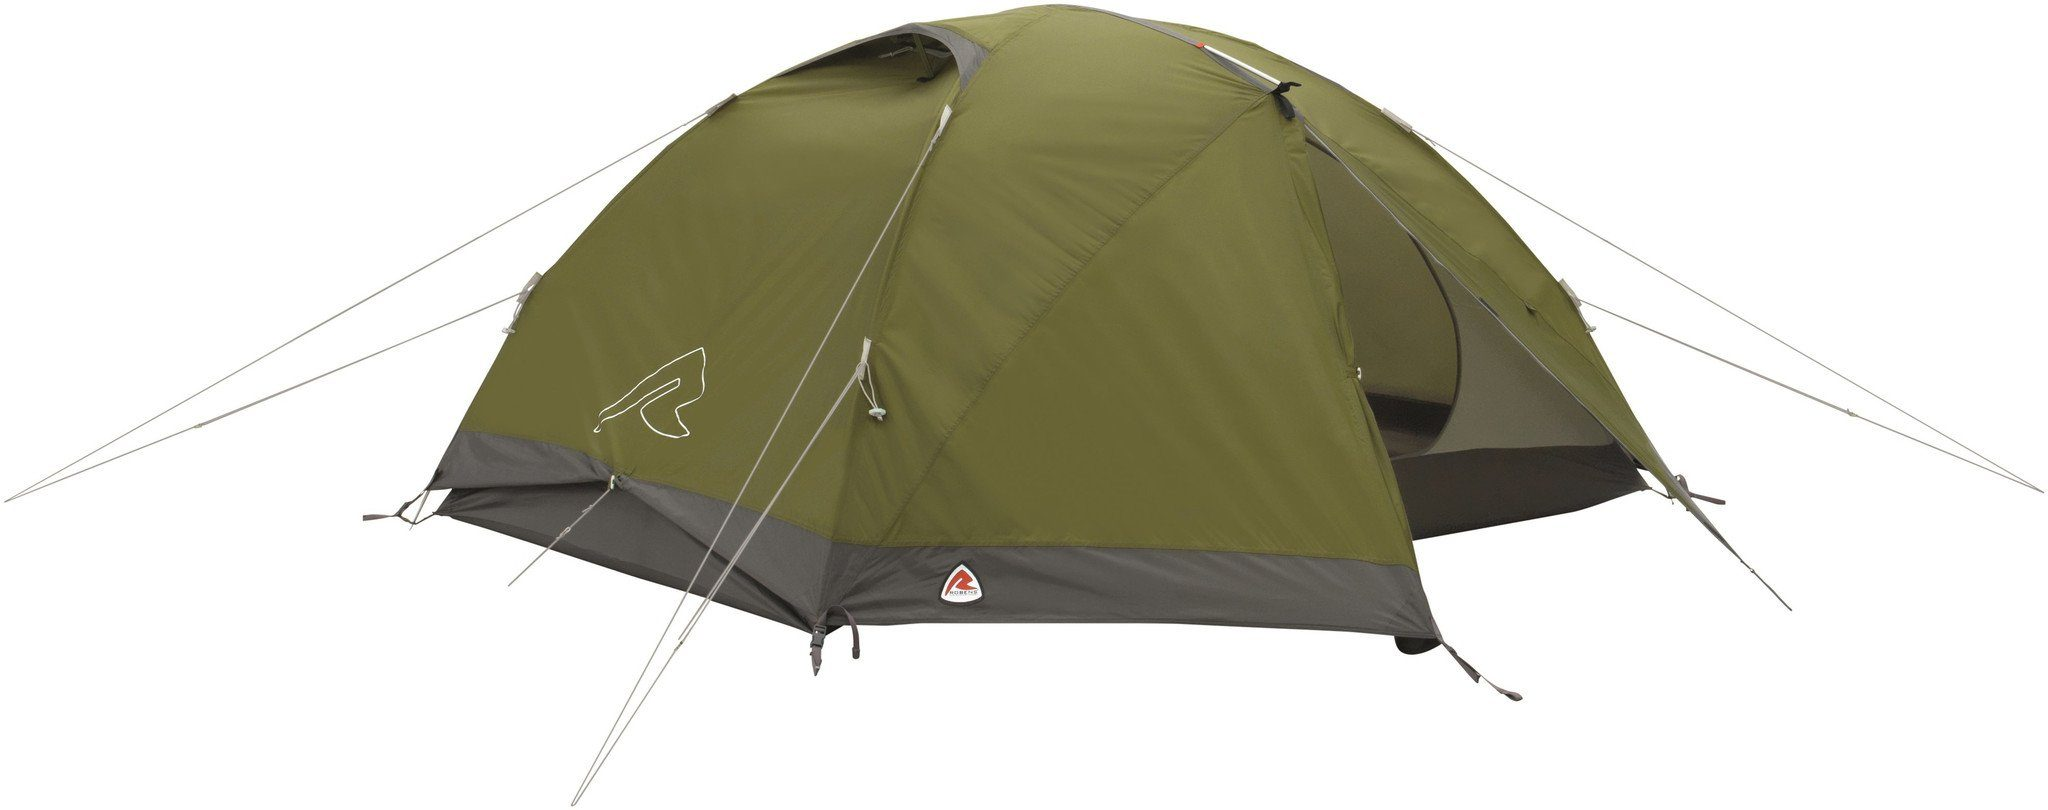 Robens Zelt »Lodge 2 Tent«